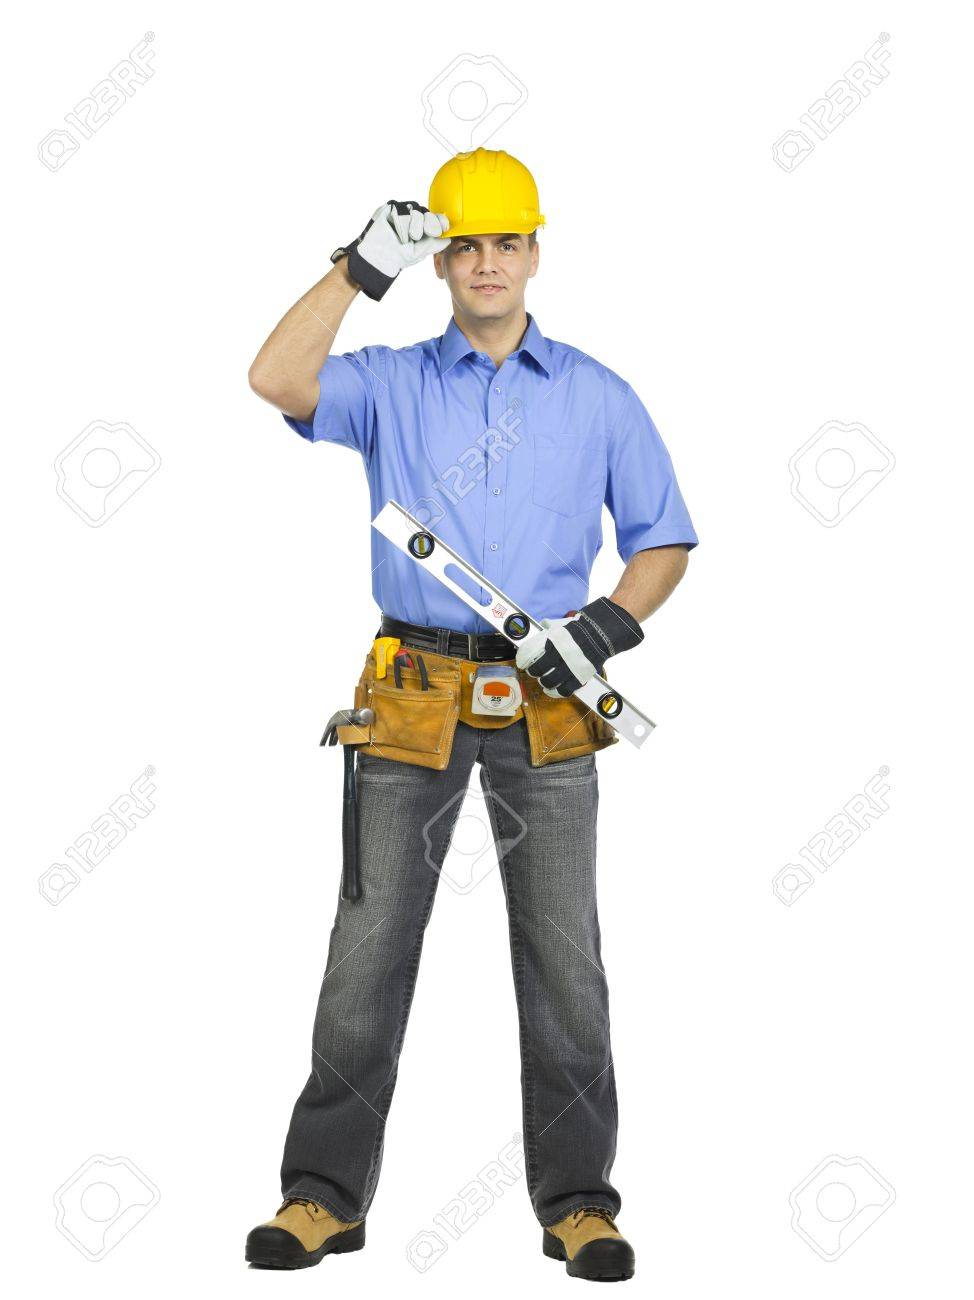 Unhappy Construction Worker Construction Worker Wearing